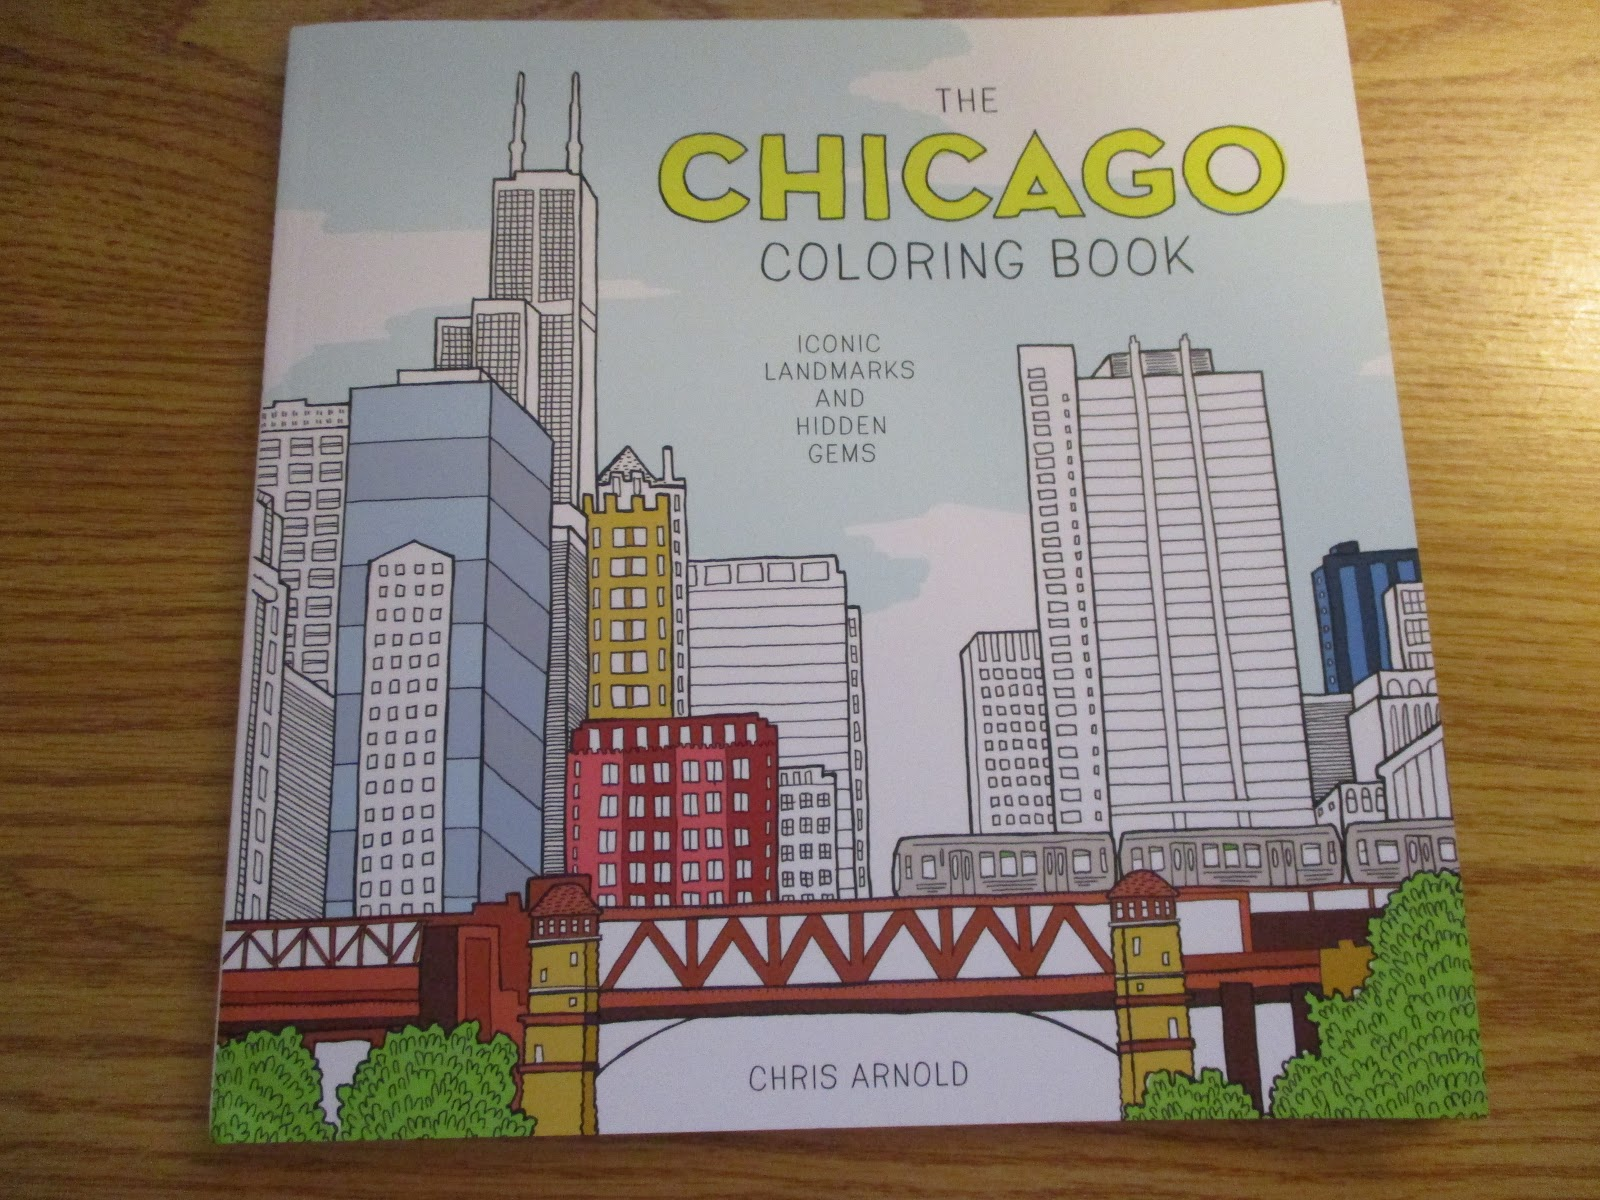 The Chicago Coloring Book By Chris Arnold From Agate Publishing Which Featuring More Than 50 Illustrations Is An Adult